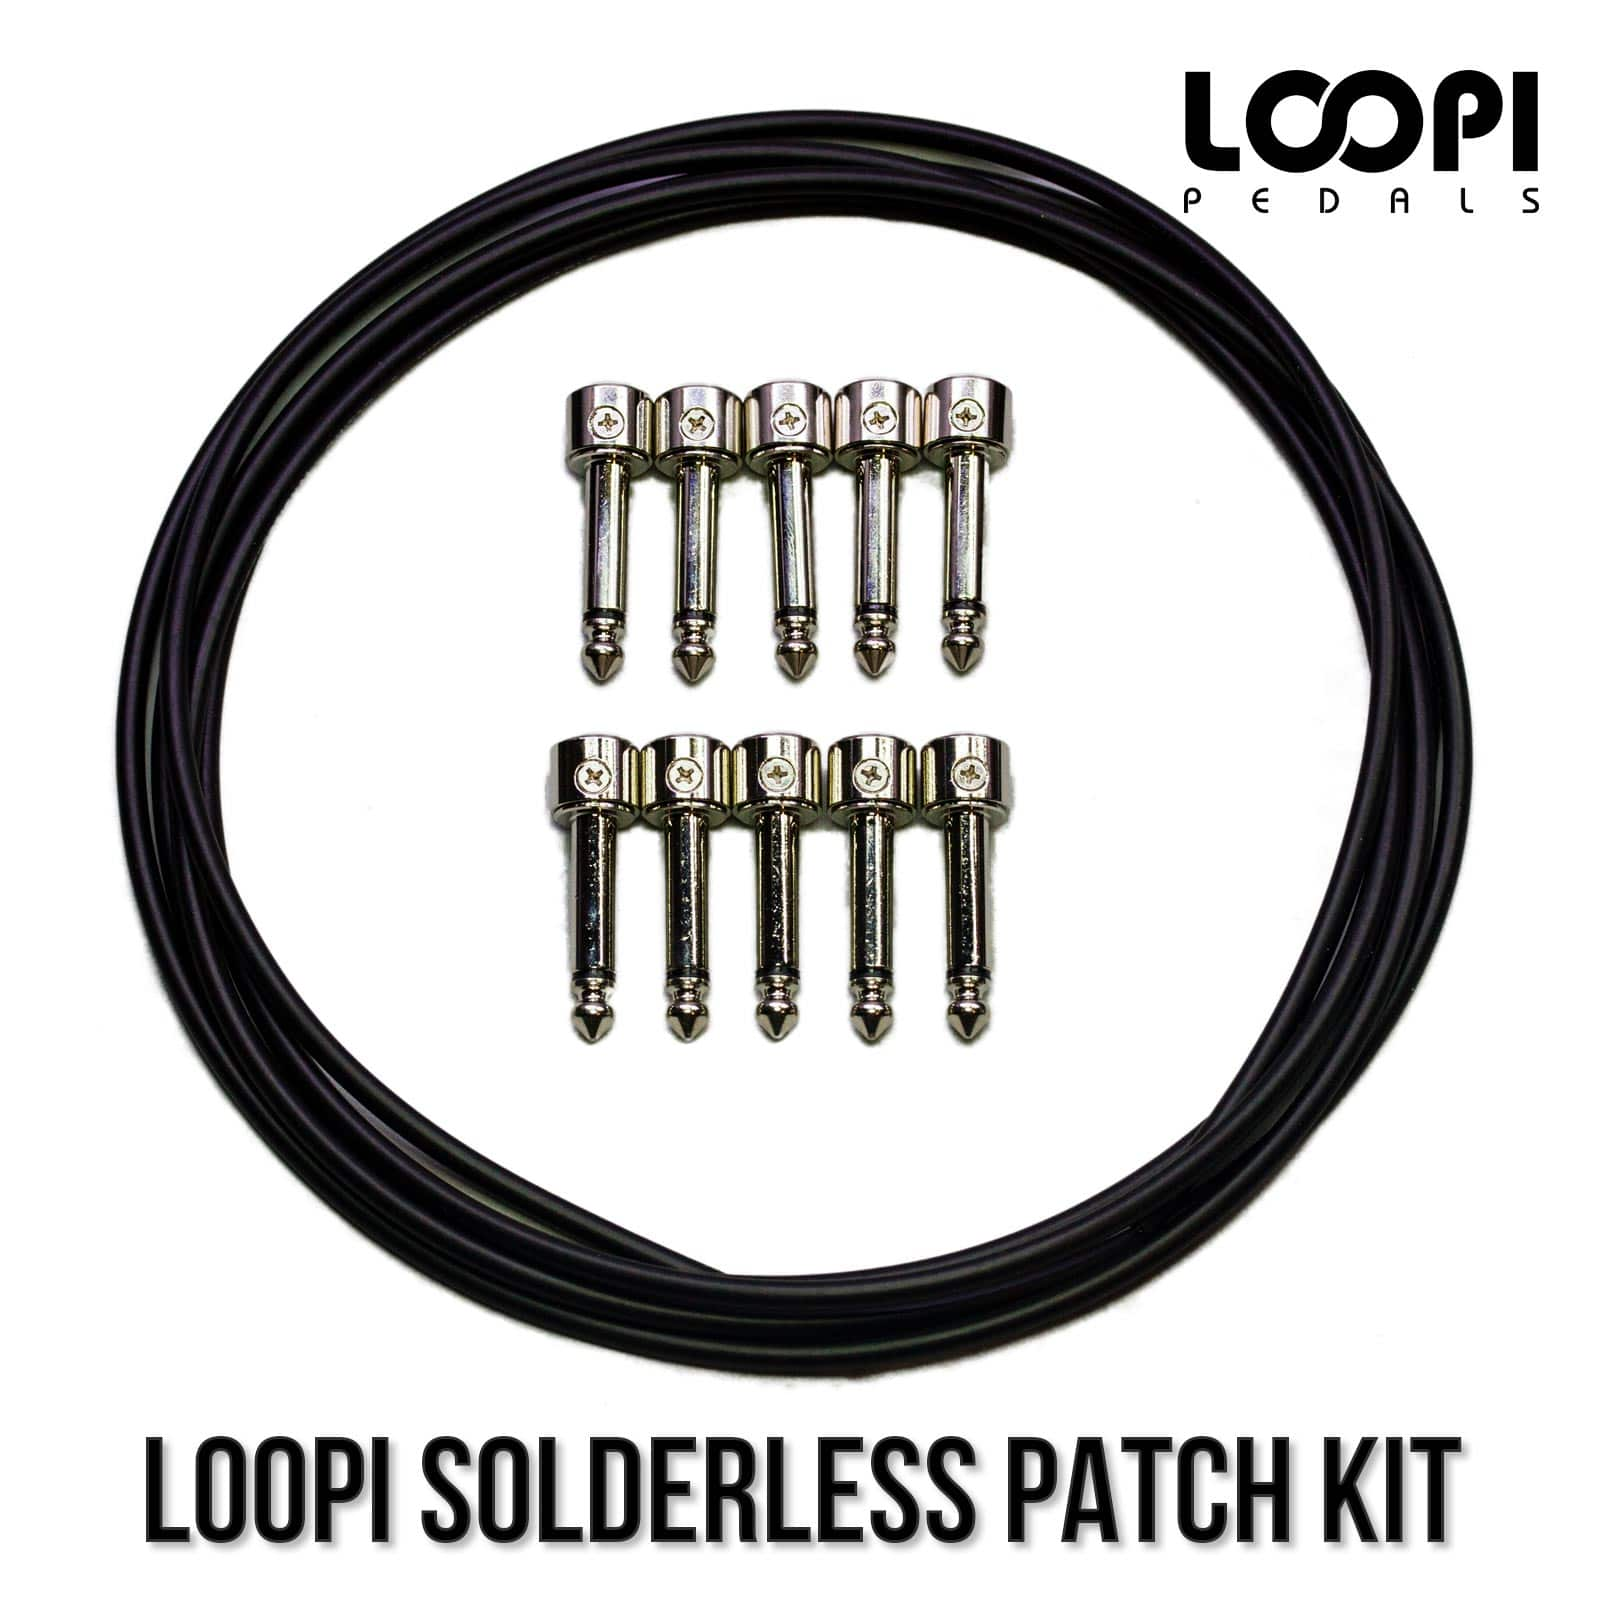 solderless patch cable kit